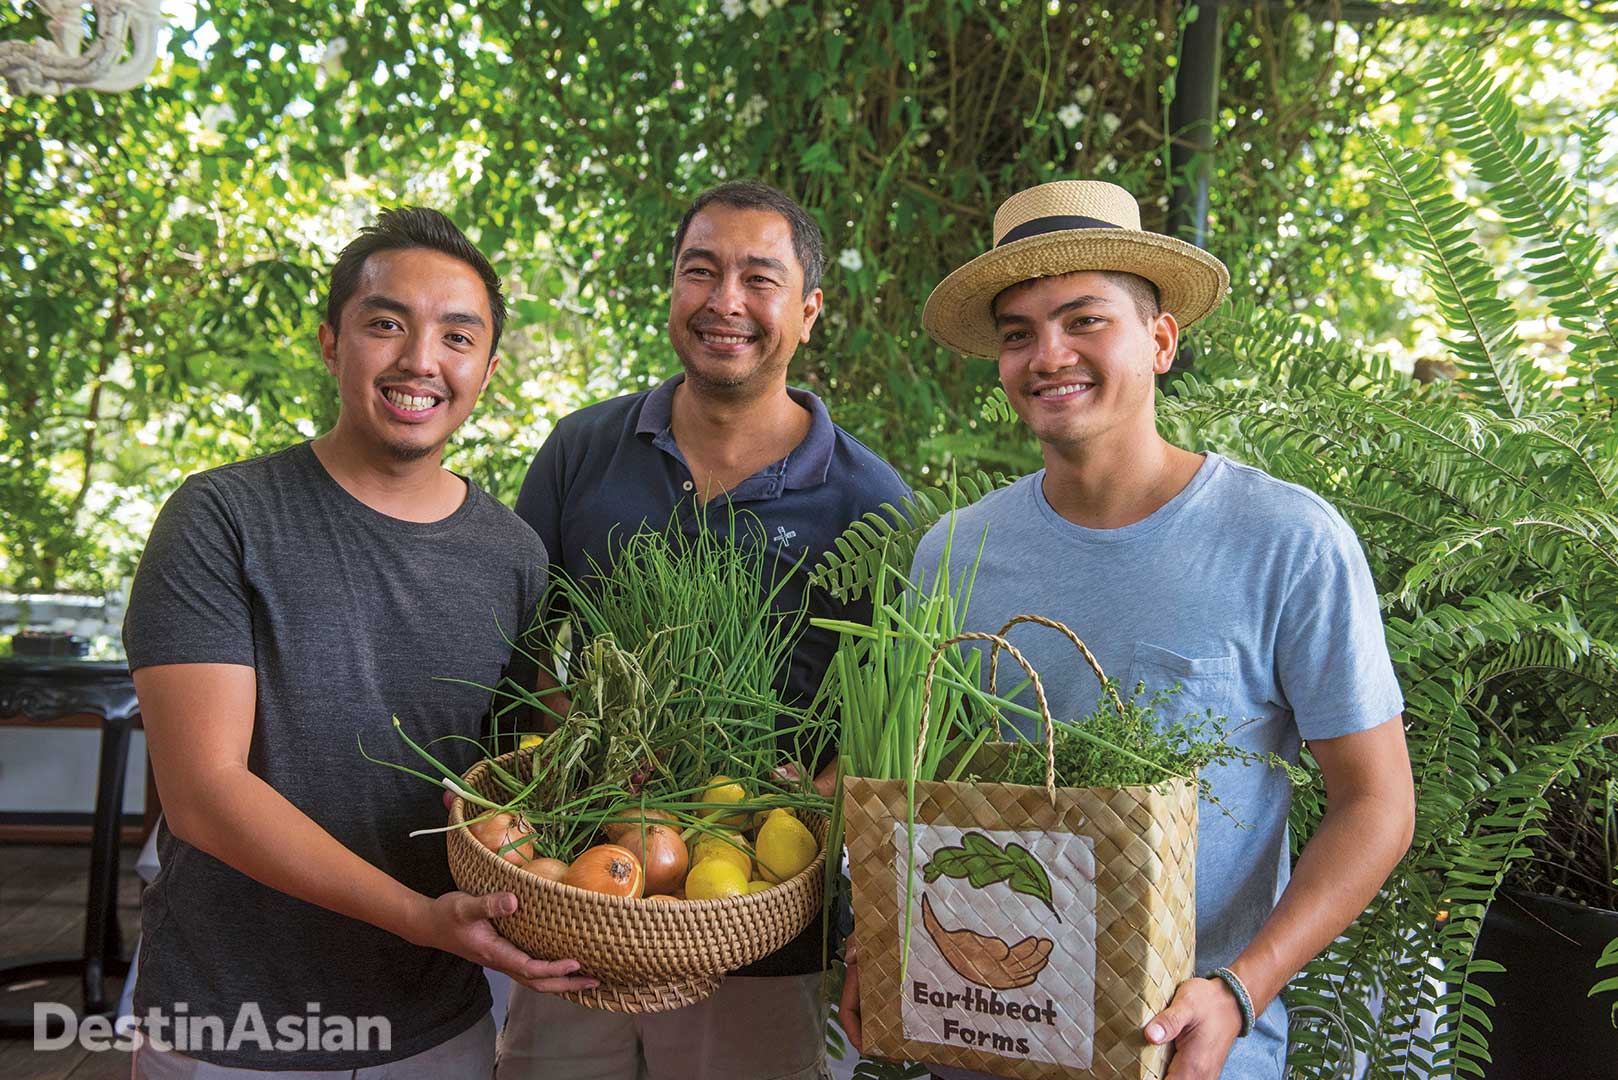 Raphael Teraoka Dacones of Teraoka Farms with fellow farmers Nicolo Aberasturi of Earth Flora, Inc. and Earthbeat Farm's Enzo Pinga.